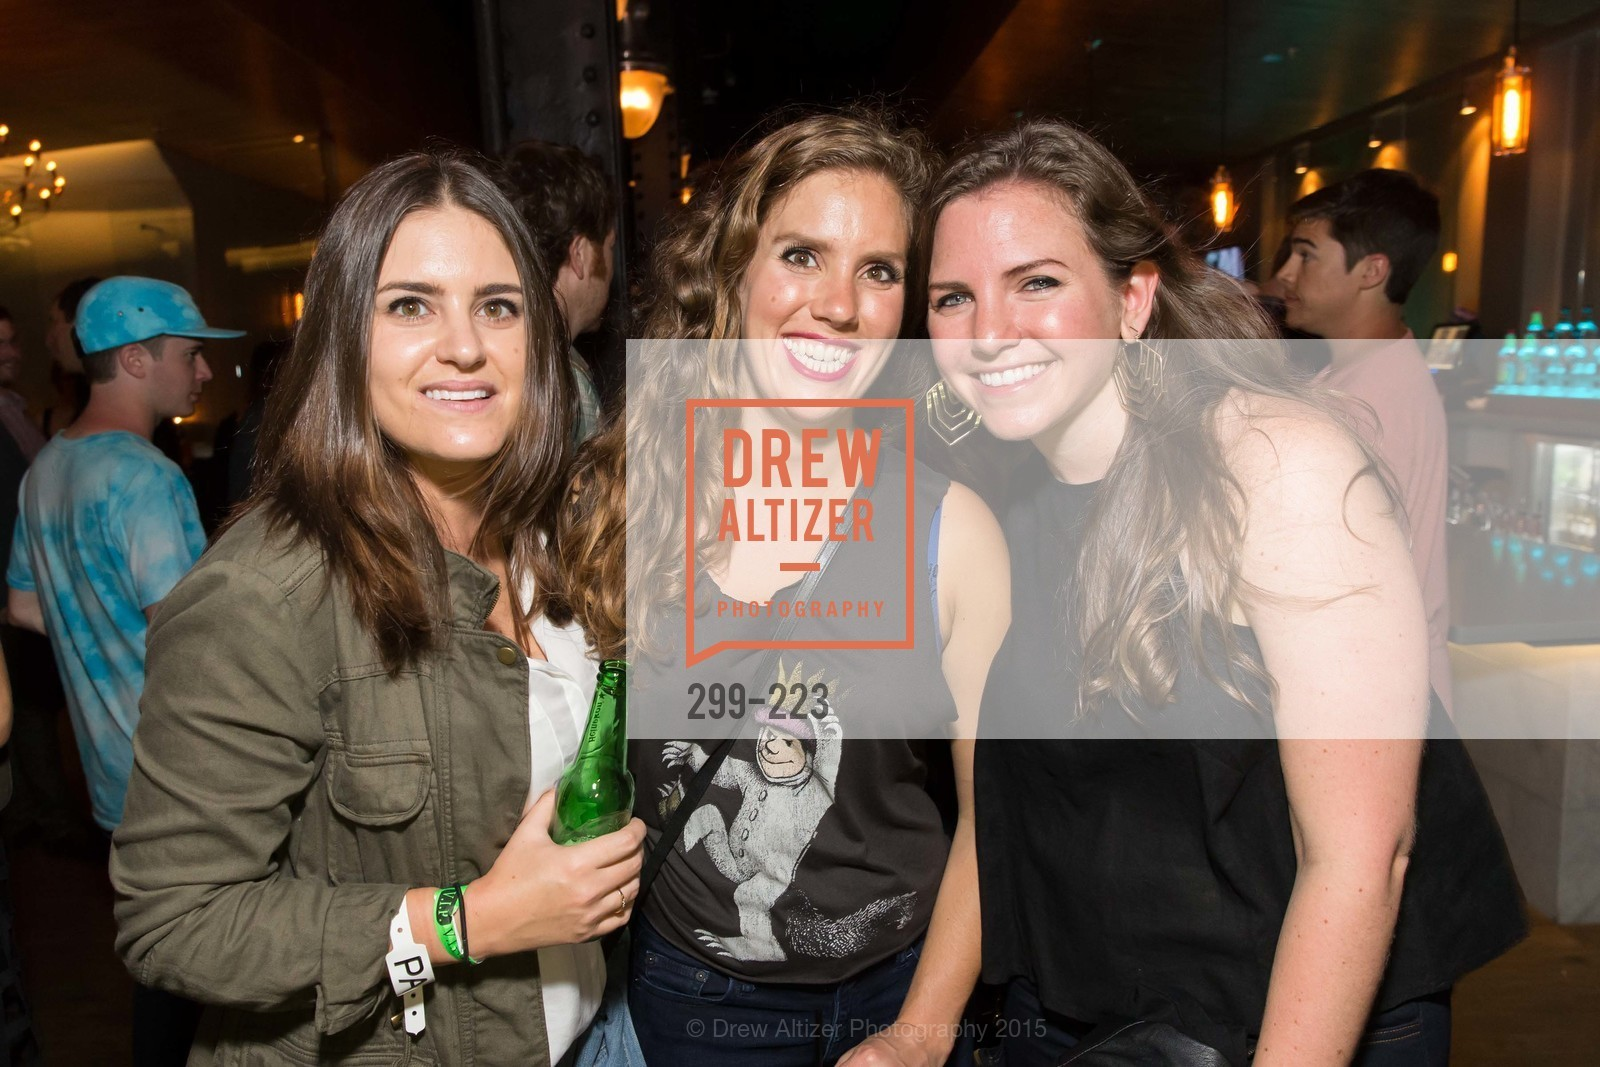 Chelsea Davenport, Mackenzie Nickels, Celia Butler, PAX + Toro Y Moi San Francisco, 60 6th St, San Francisco, August 8th, 2015,Drew Altizer, Drew Altizer Photography, full-service agency, private events, San Francisco photographer, photographer california